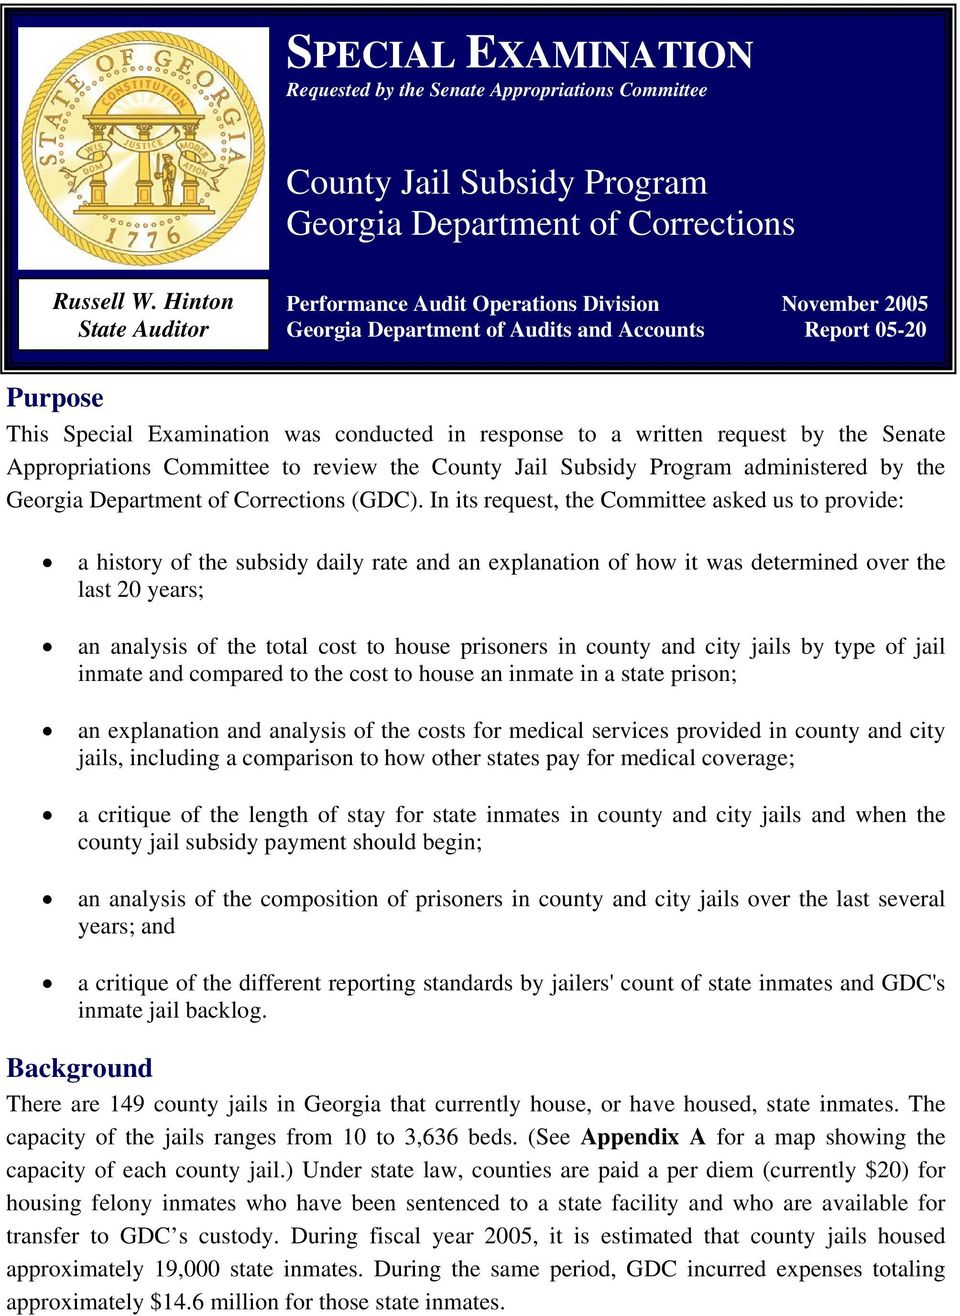 request by the Senate Appropriations Committee to review the County Jail Program administered by the Georgia Department of Corrections (GDC).